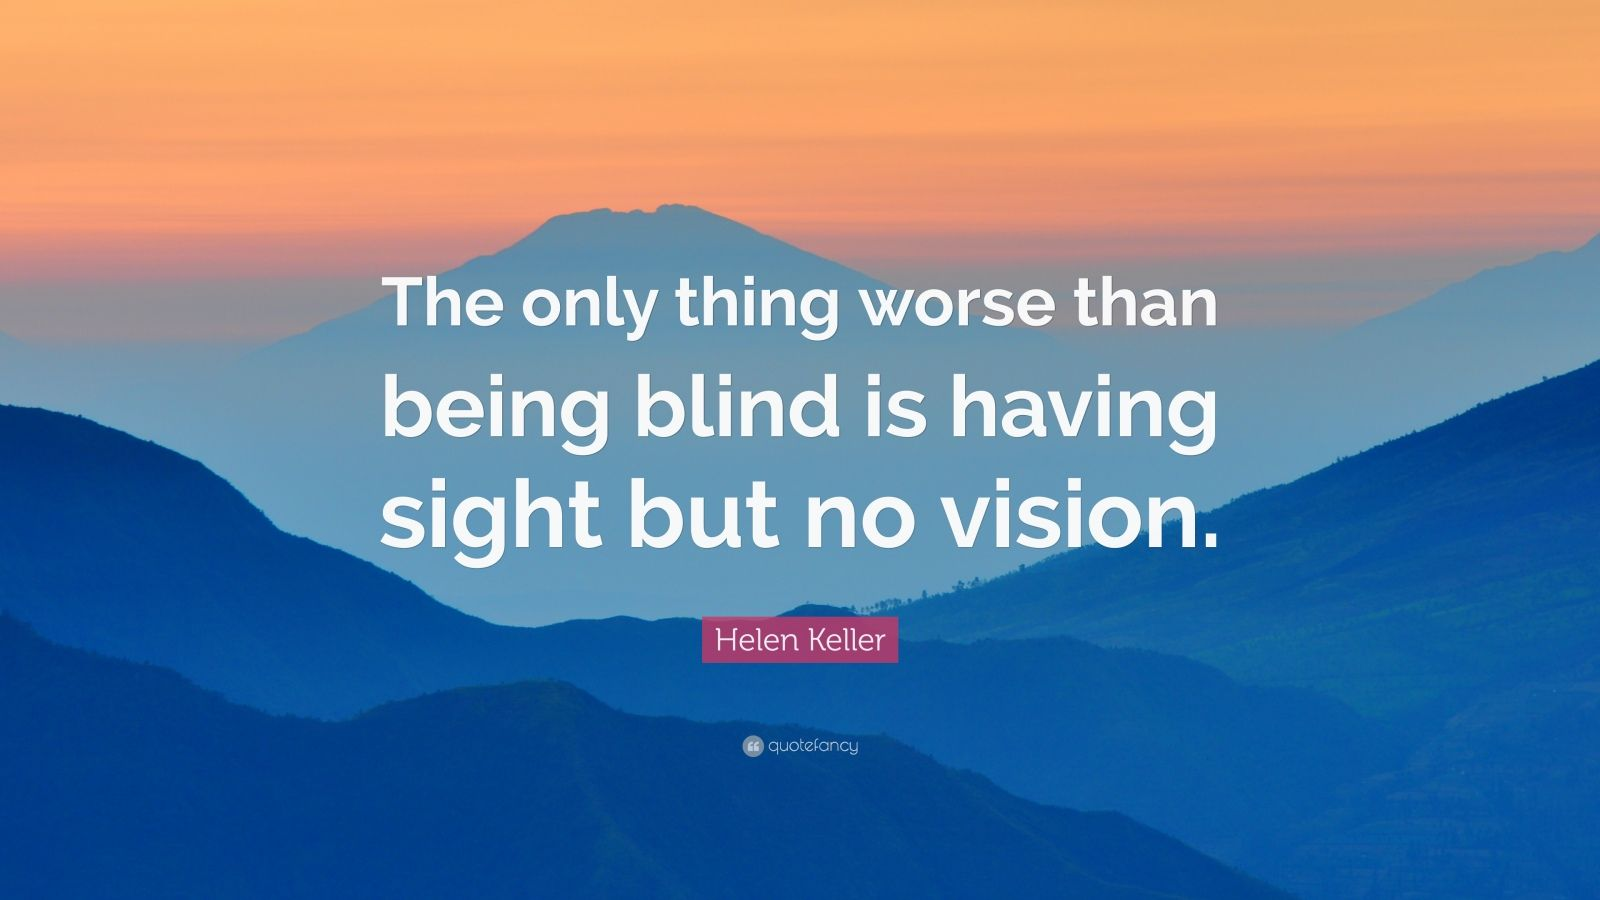 Motivational Life Quotes Wallpapers Helen Keller Quote The Only Thing Worse Than Being Blind